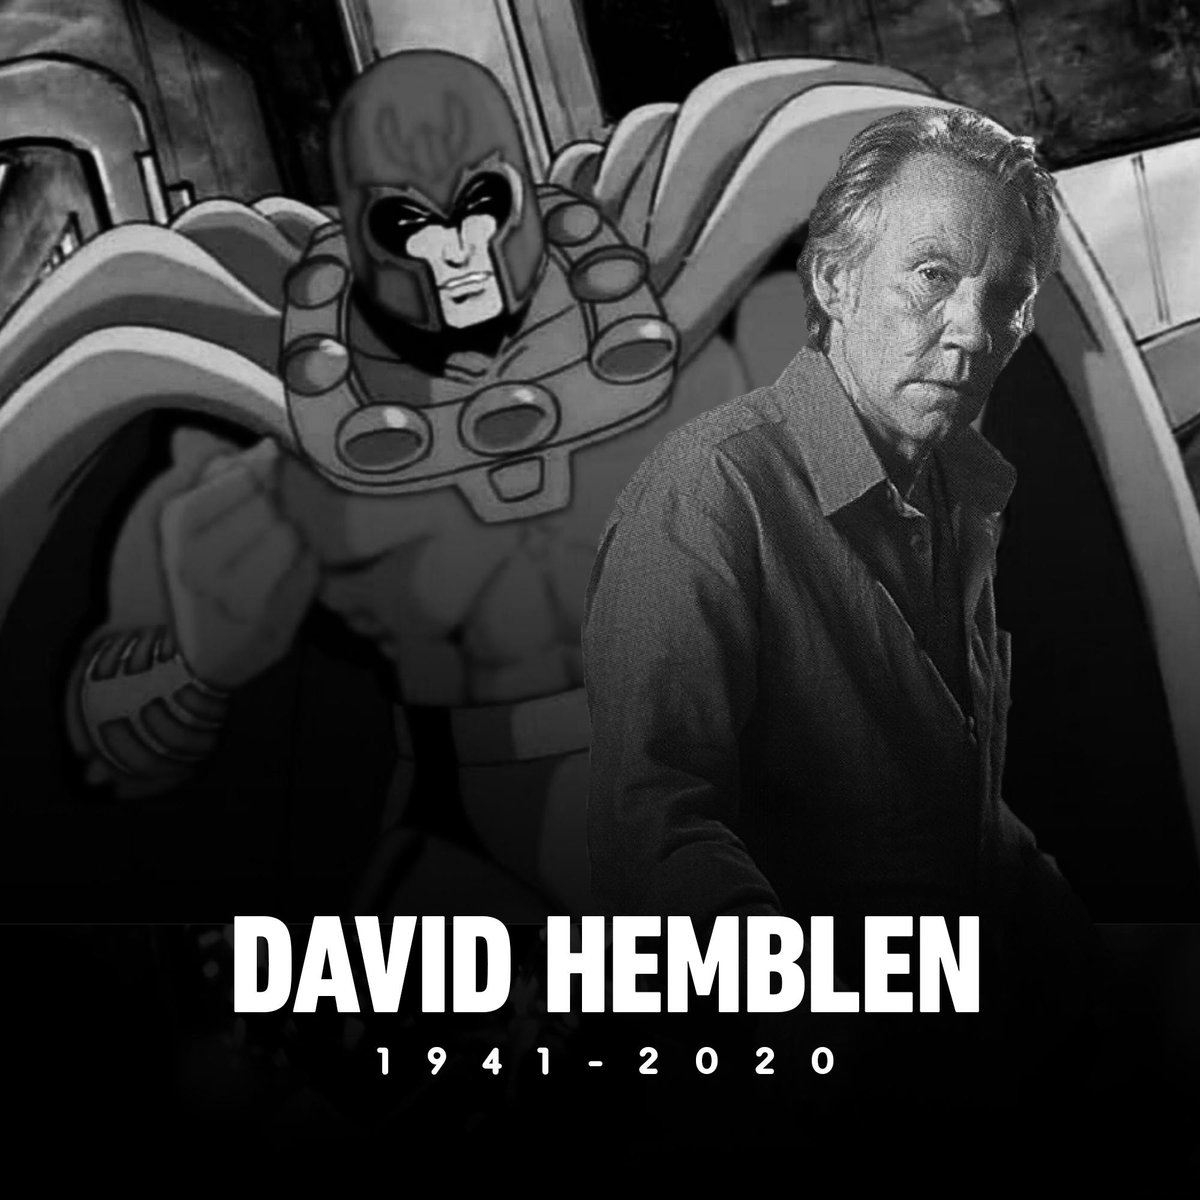 David Hemblen, the voice actor for Magneto in X-Men: The Animated Series, passed away at the age of 79 on November 16, 2020.